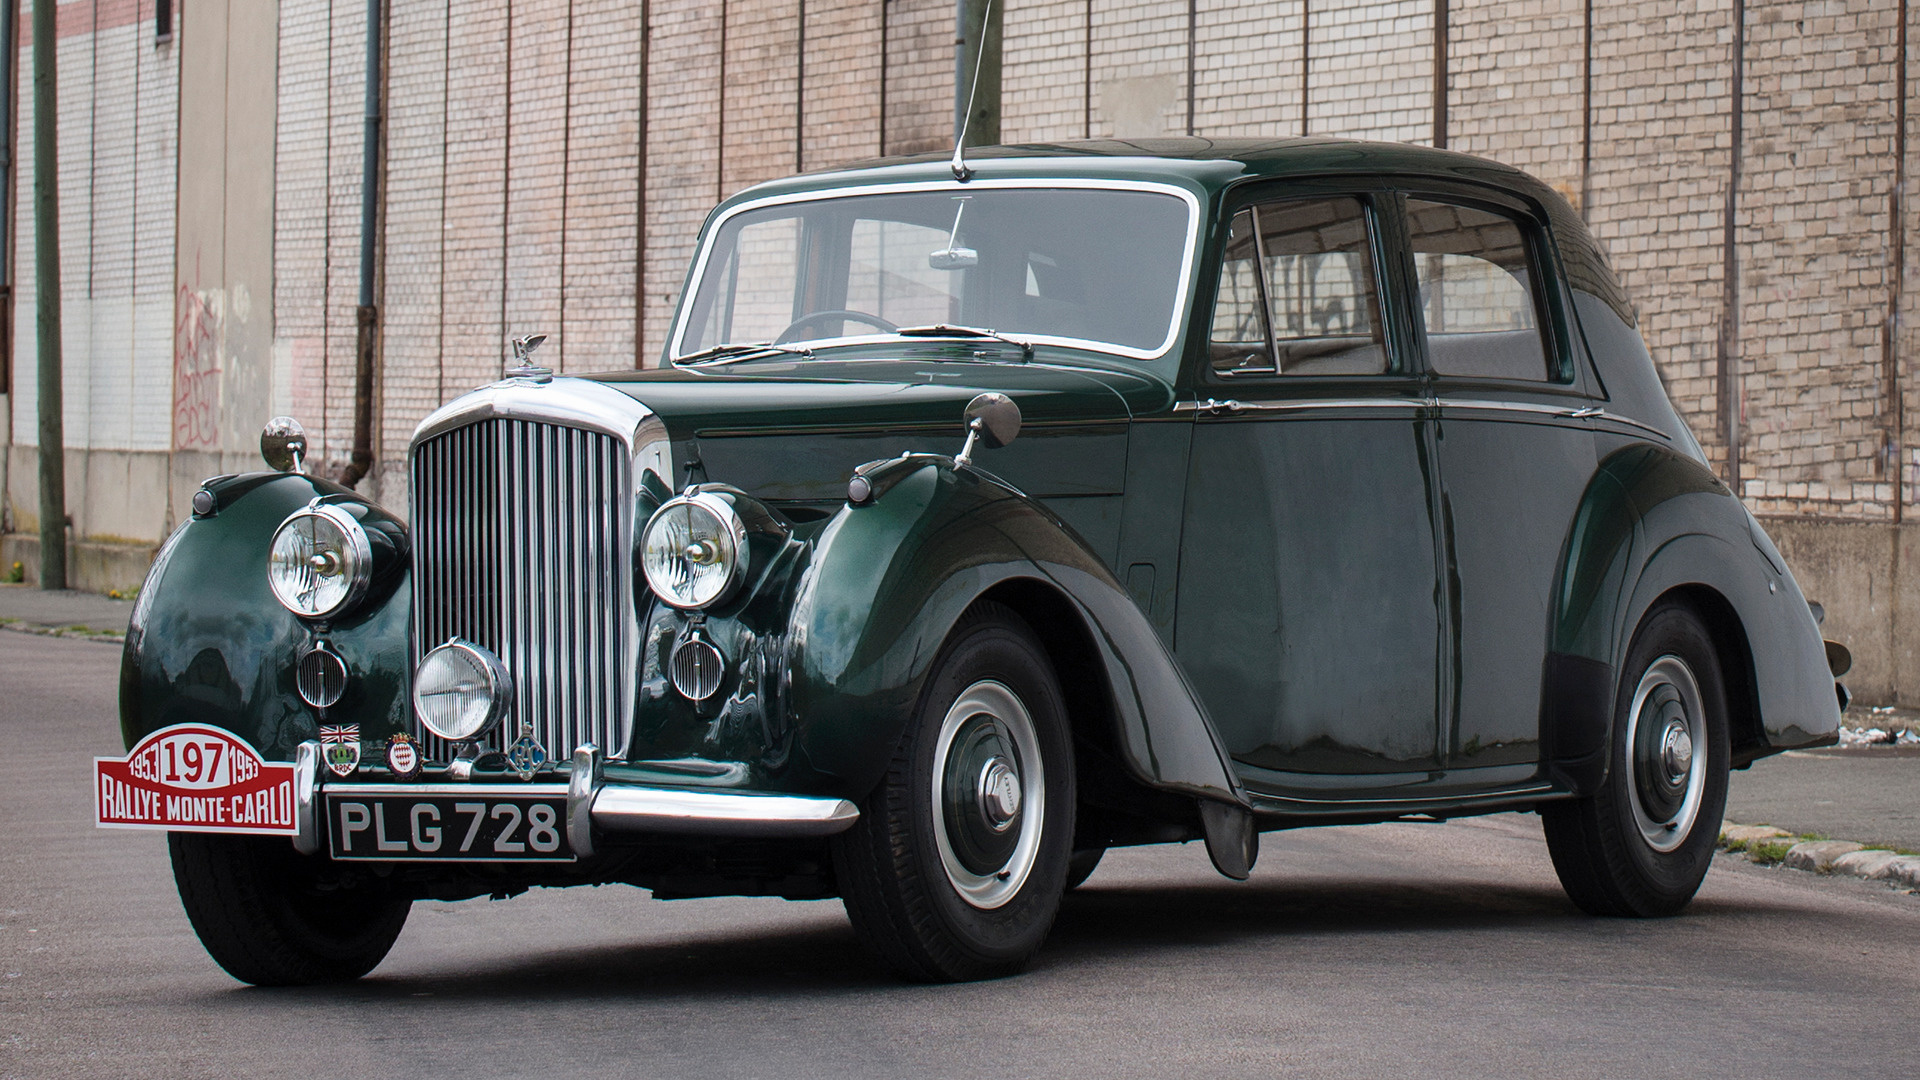 1952 bentley r type rallye monte carlo wallpapers and hd - Monte carlo movie wallpaper ...